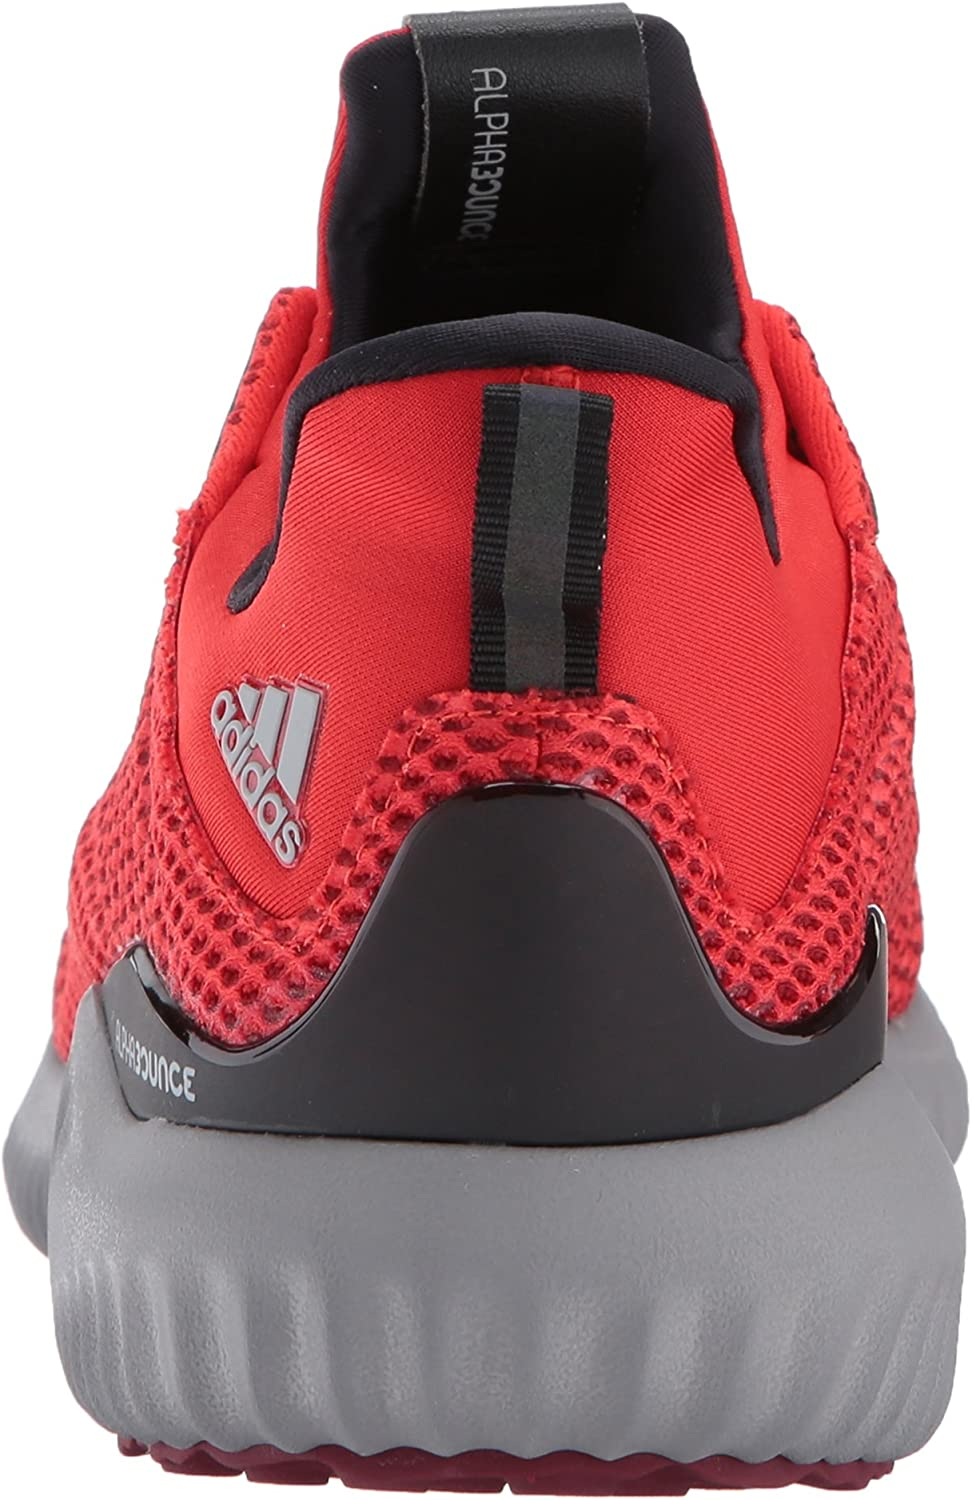 adidas Performance Men's Alphabounce M Running Shoe Core Red/Collegiate Burgundy/Utility Black